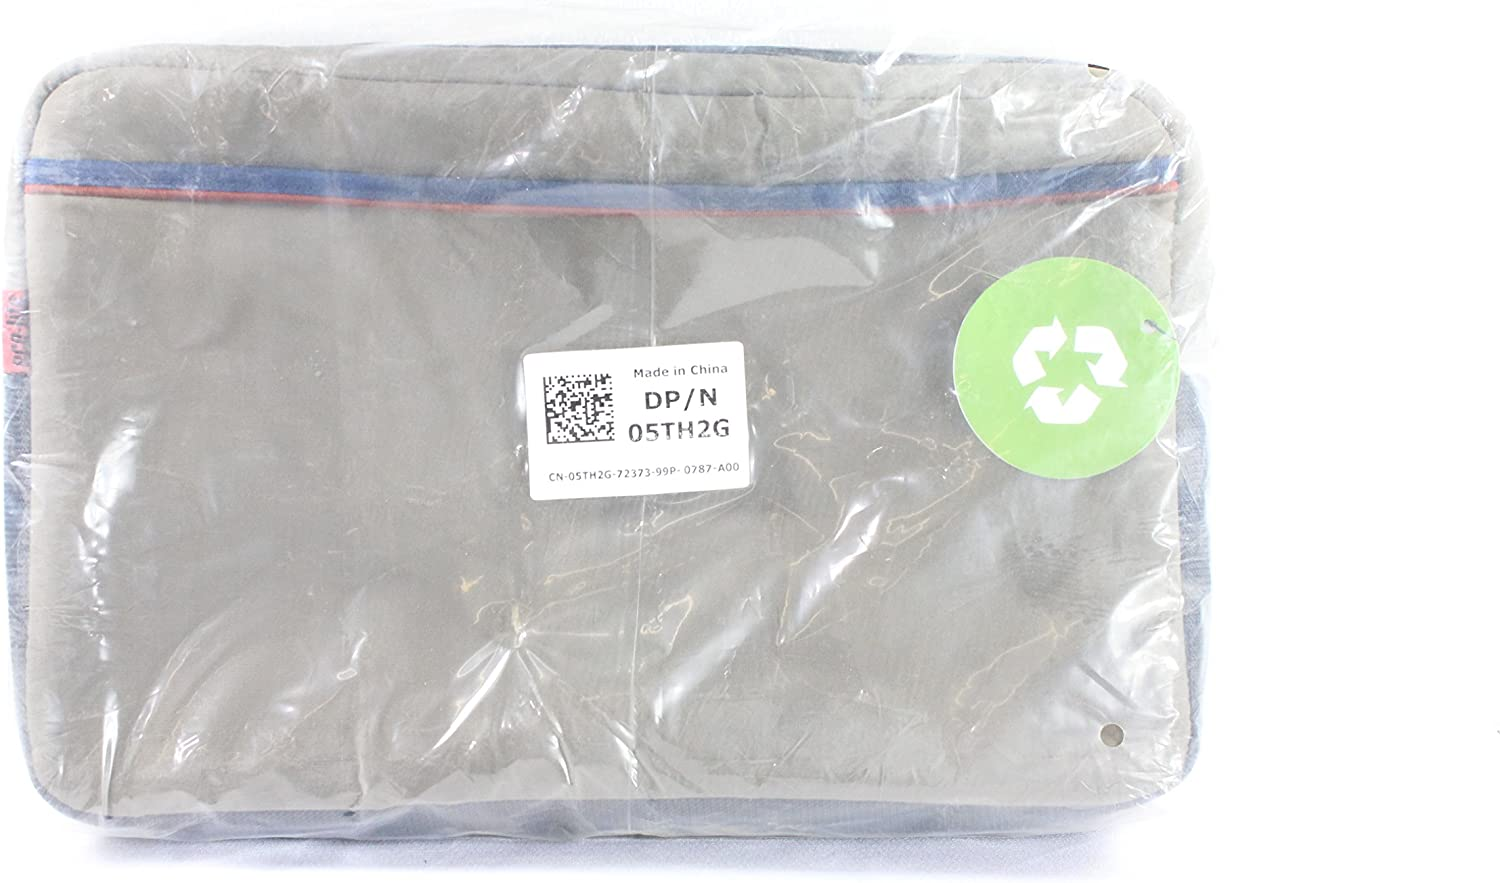 "Dell 15.6"" Carrying Case Sleeve for Any Notebook & Laptop 5TH2G 05TH2G"